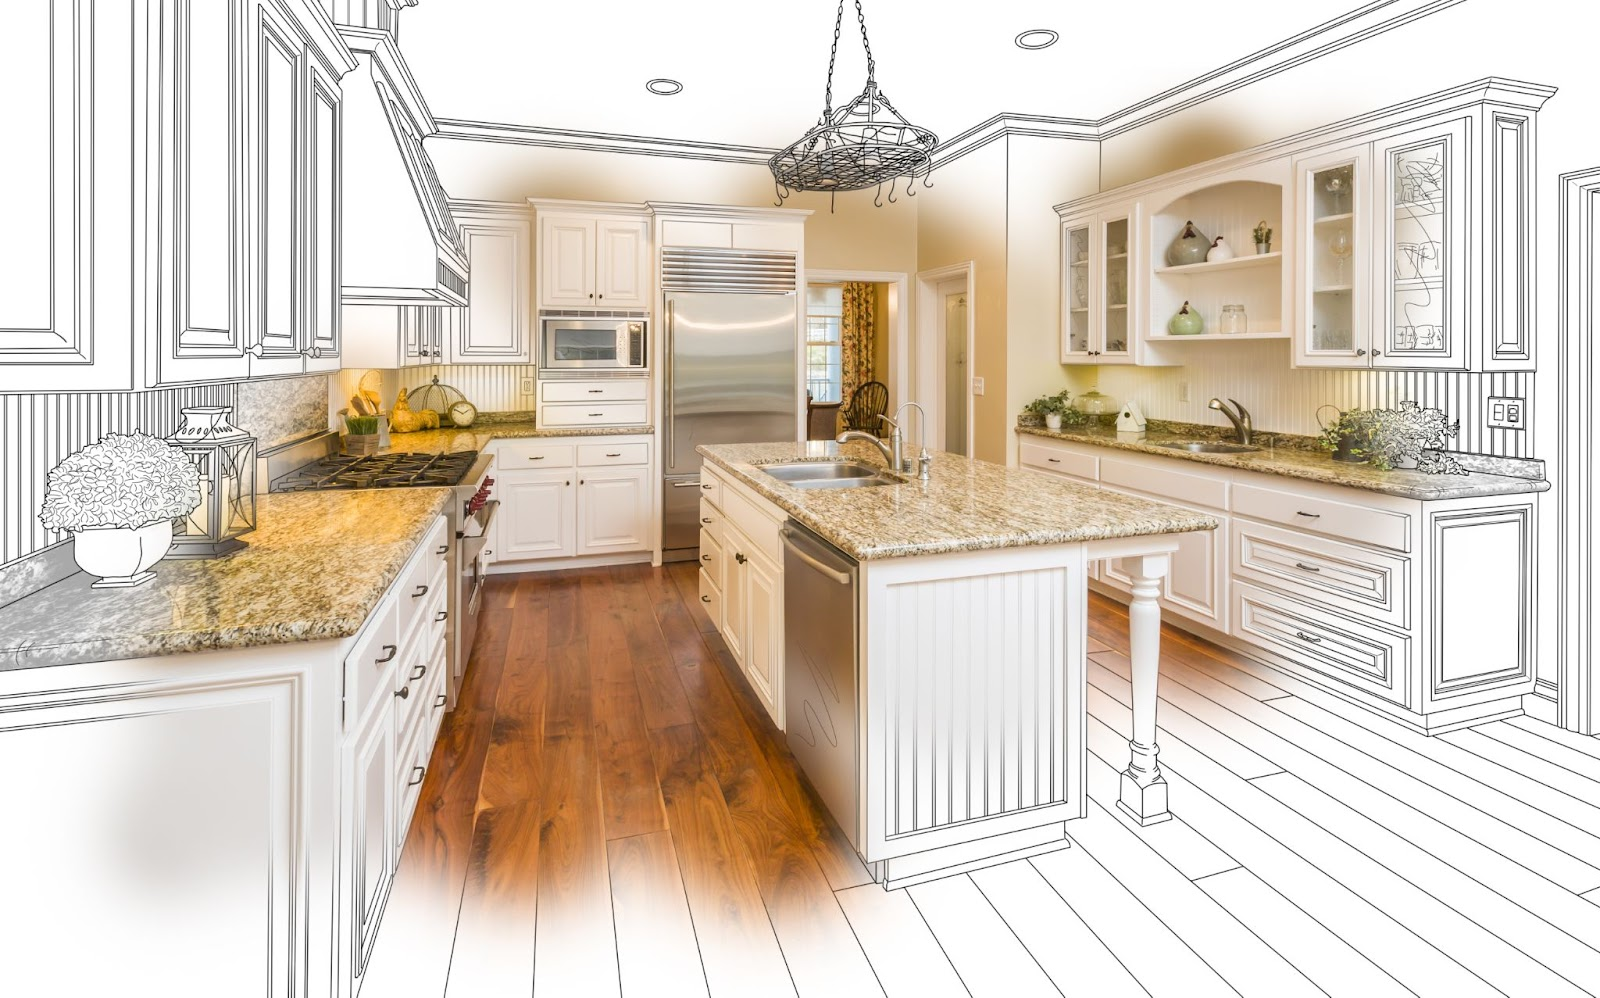 a drawing of a kitchen remodel